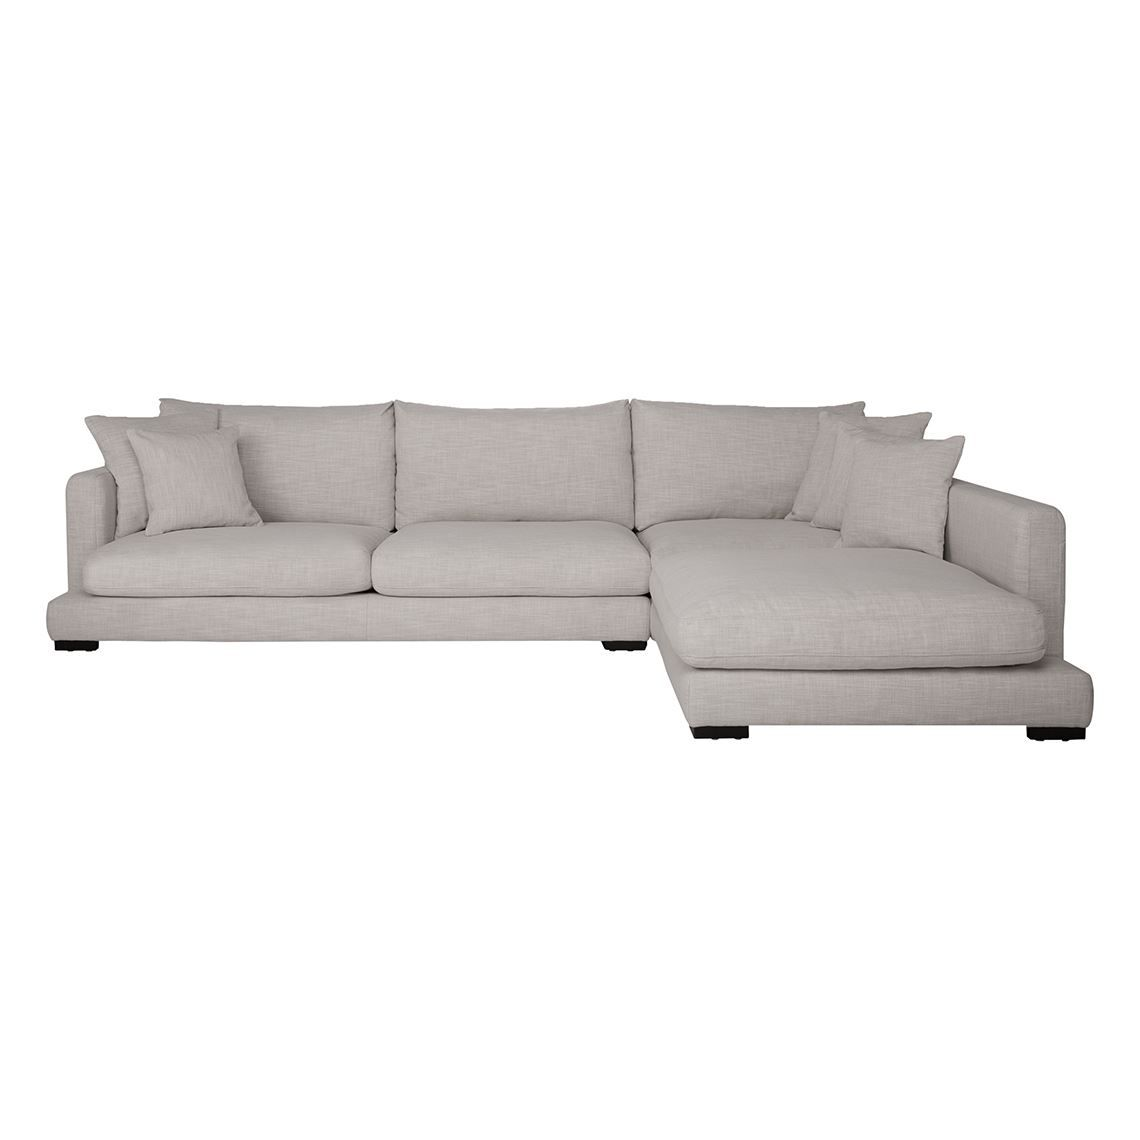 Freedom Furniture Lounges Hamilton 3 Seat Fabric Modular Sofa With Right Terminal Steel Grey